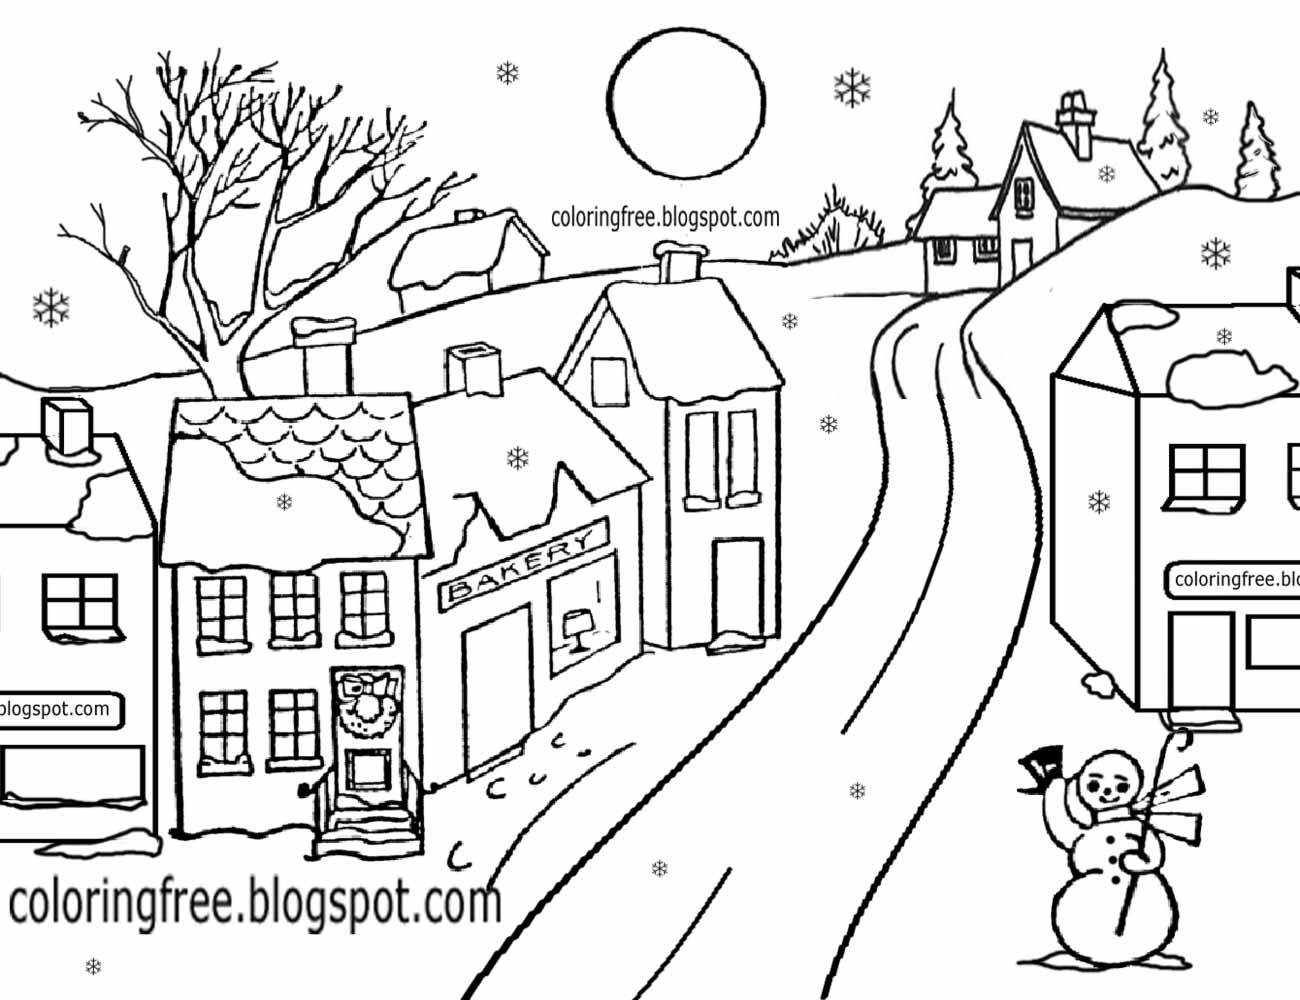 coloring scenes for kids pin by melissa lodahl hughes on coloring pages for kids coloring for kids scenes